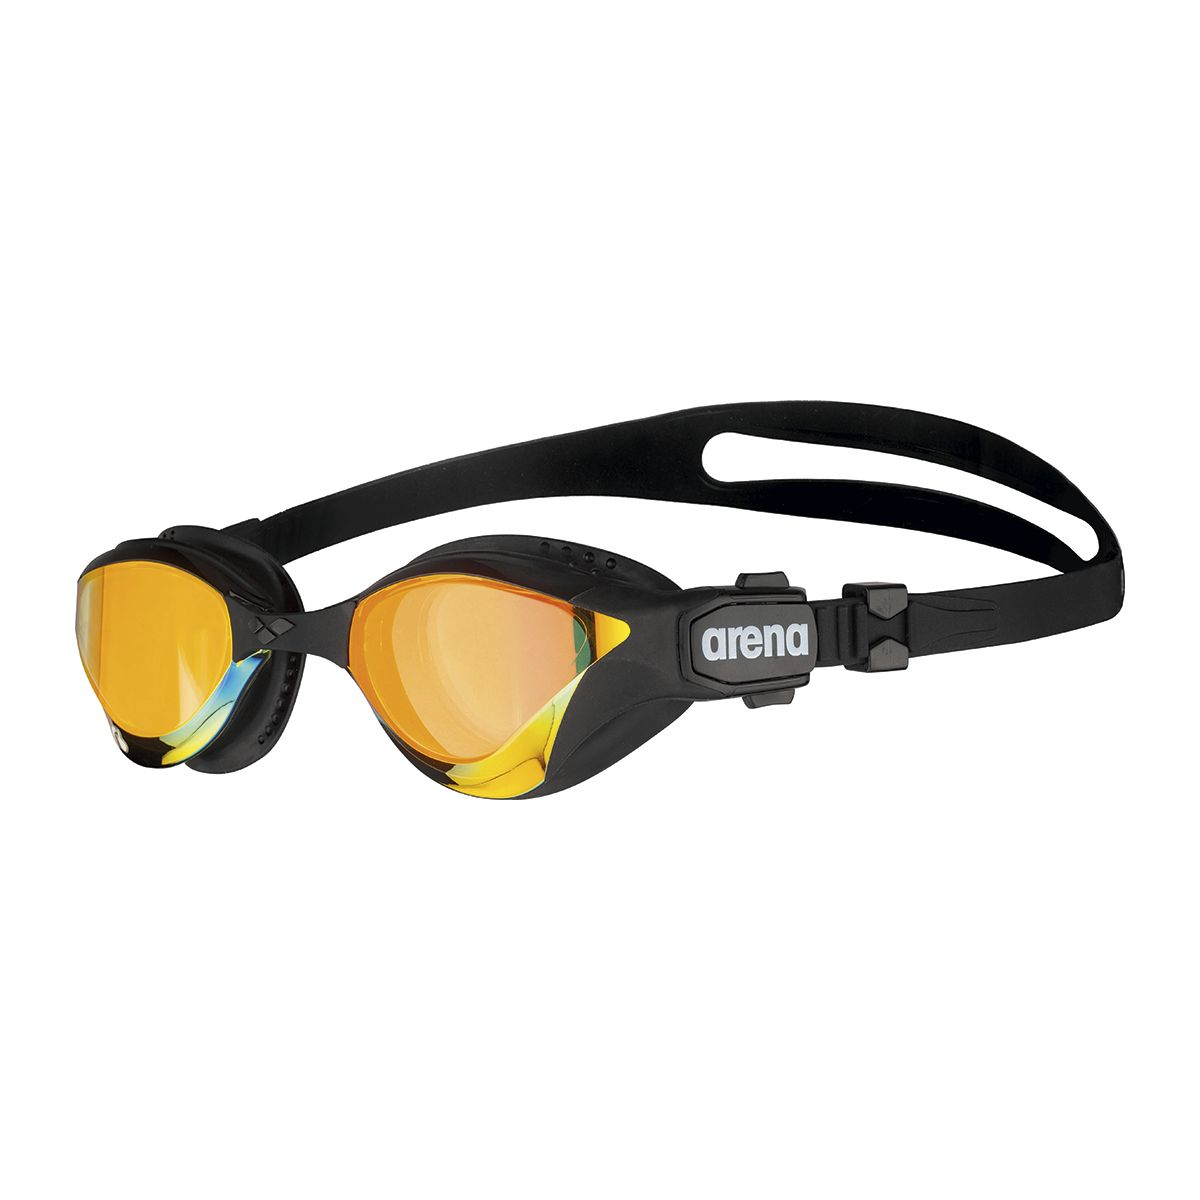 Cobra Tri Swipe Mirror Swimming Goggles